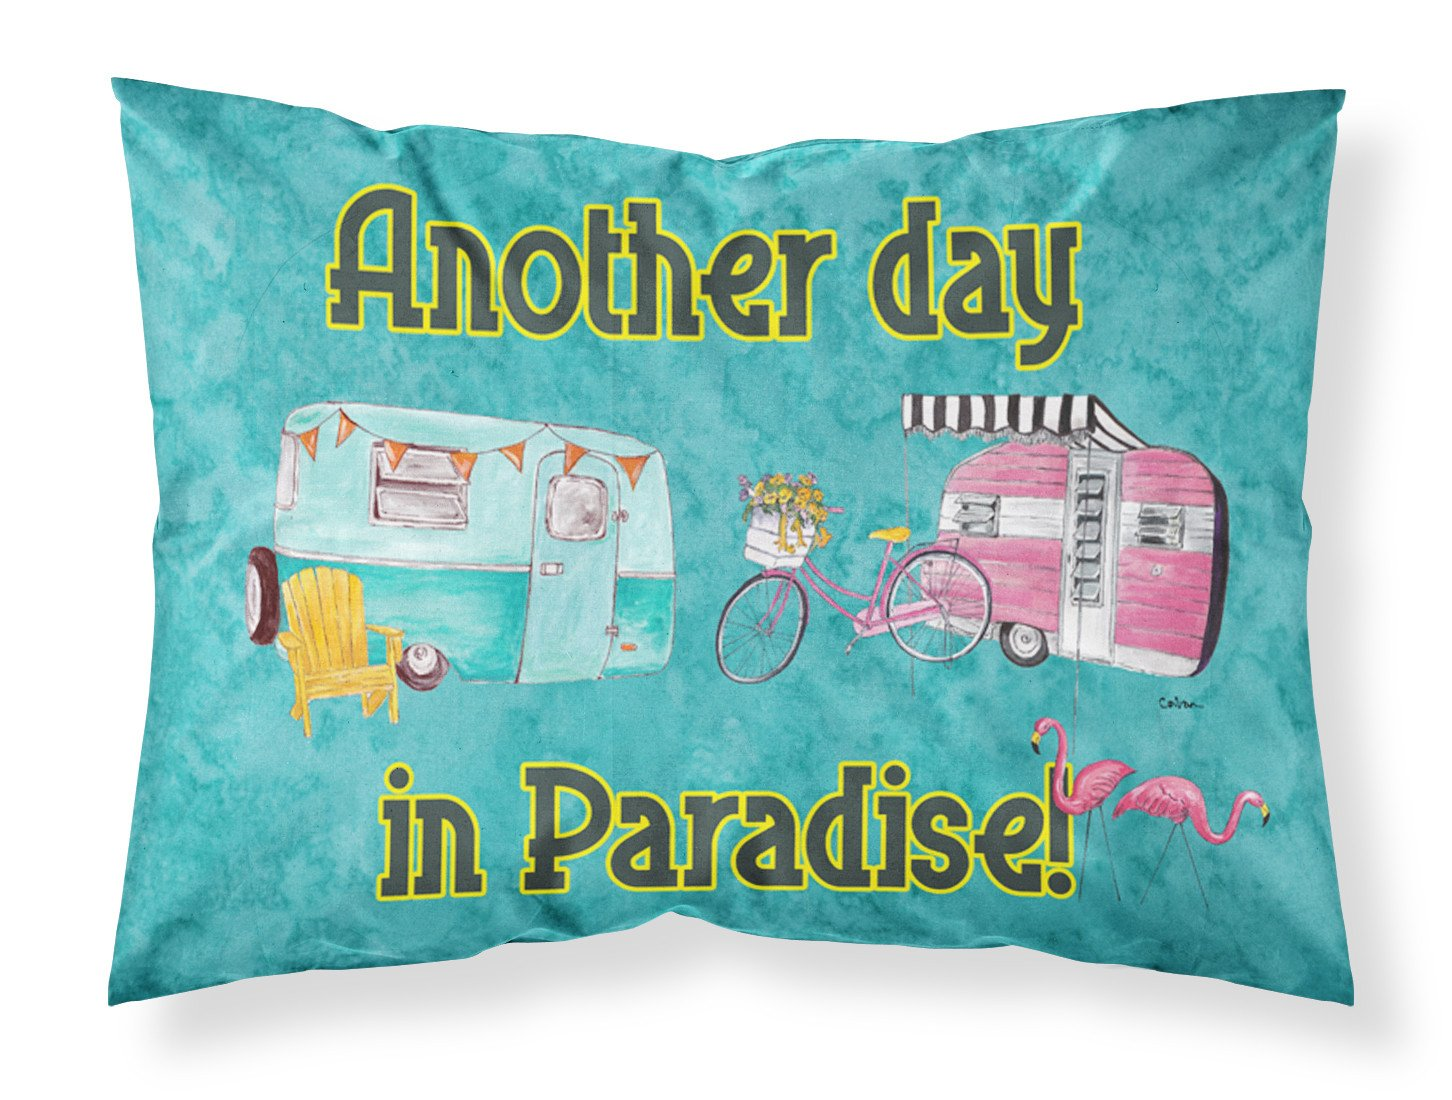 Another Day in Paradise Moisture wicking Fabric standard pillowcase by Caroline's Treasures